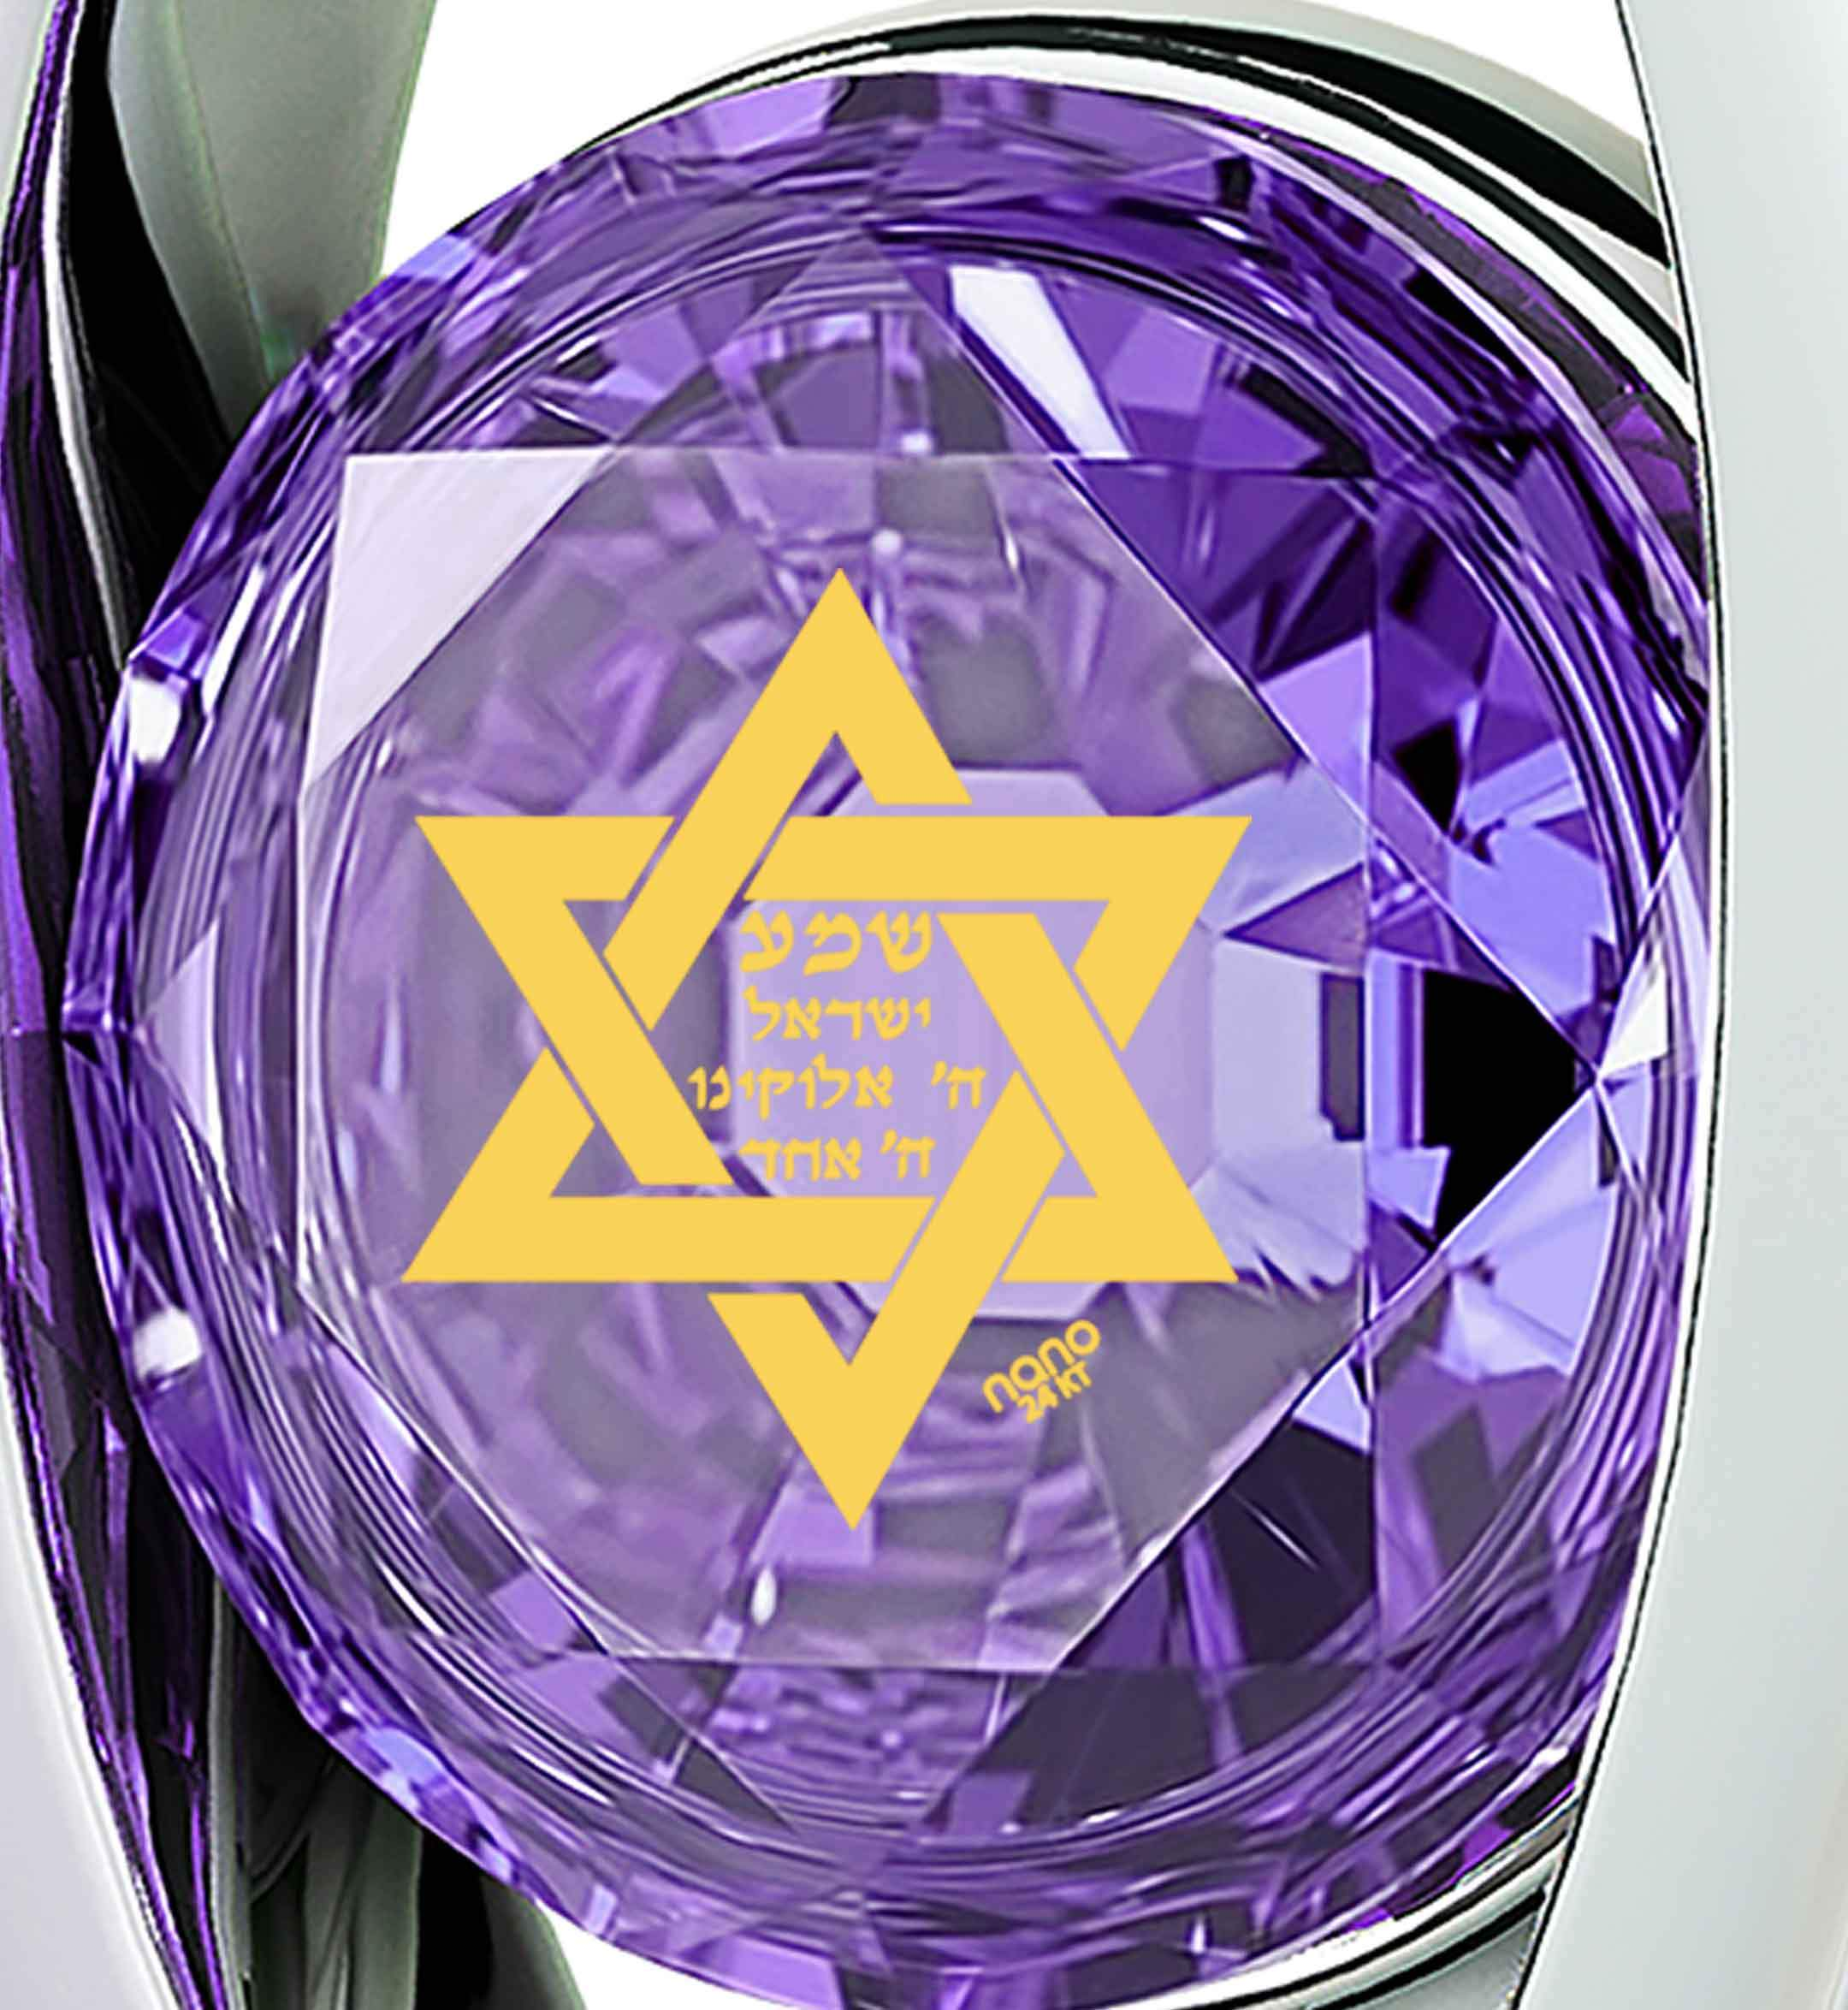 """Shema Yisrael"" Engraved in 24k, Jewish Jewelry with Purple Stone Pendant, Jewish Store, Floating Charm Necklace"